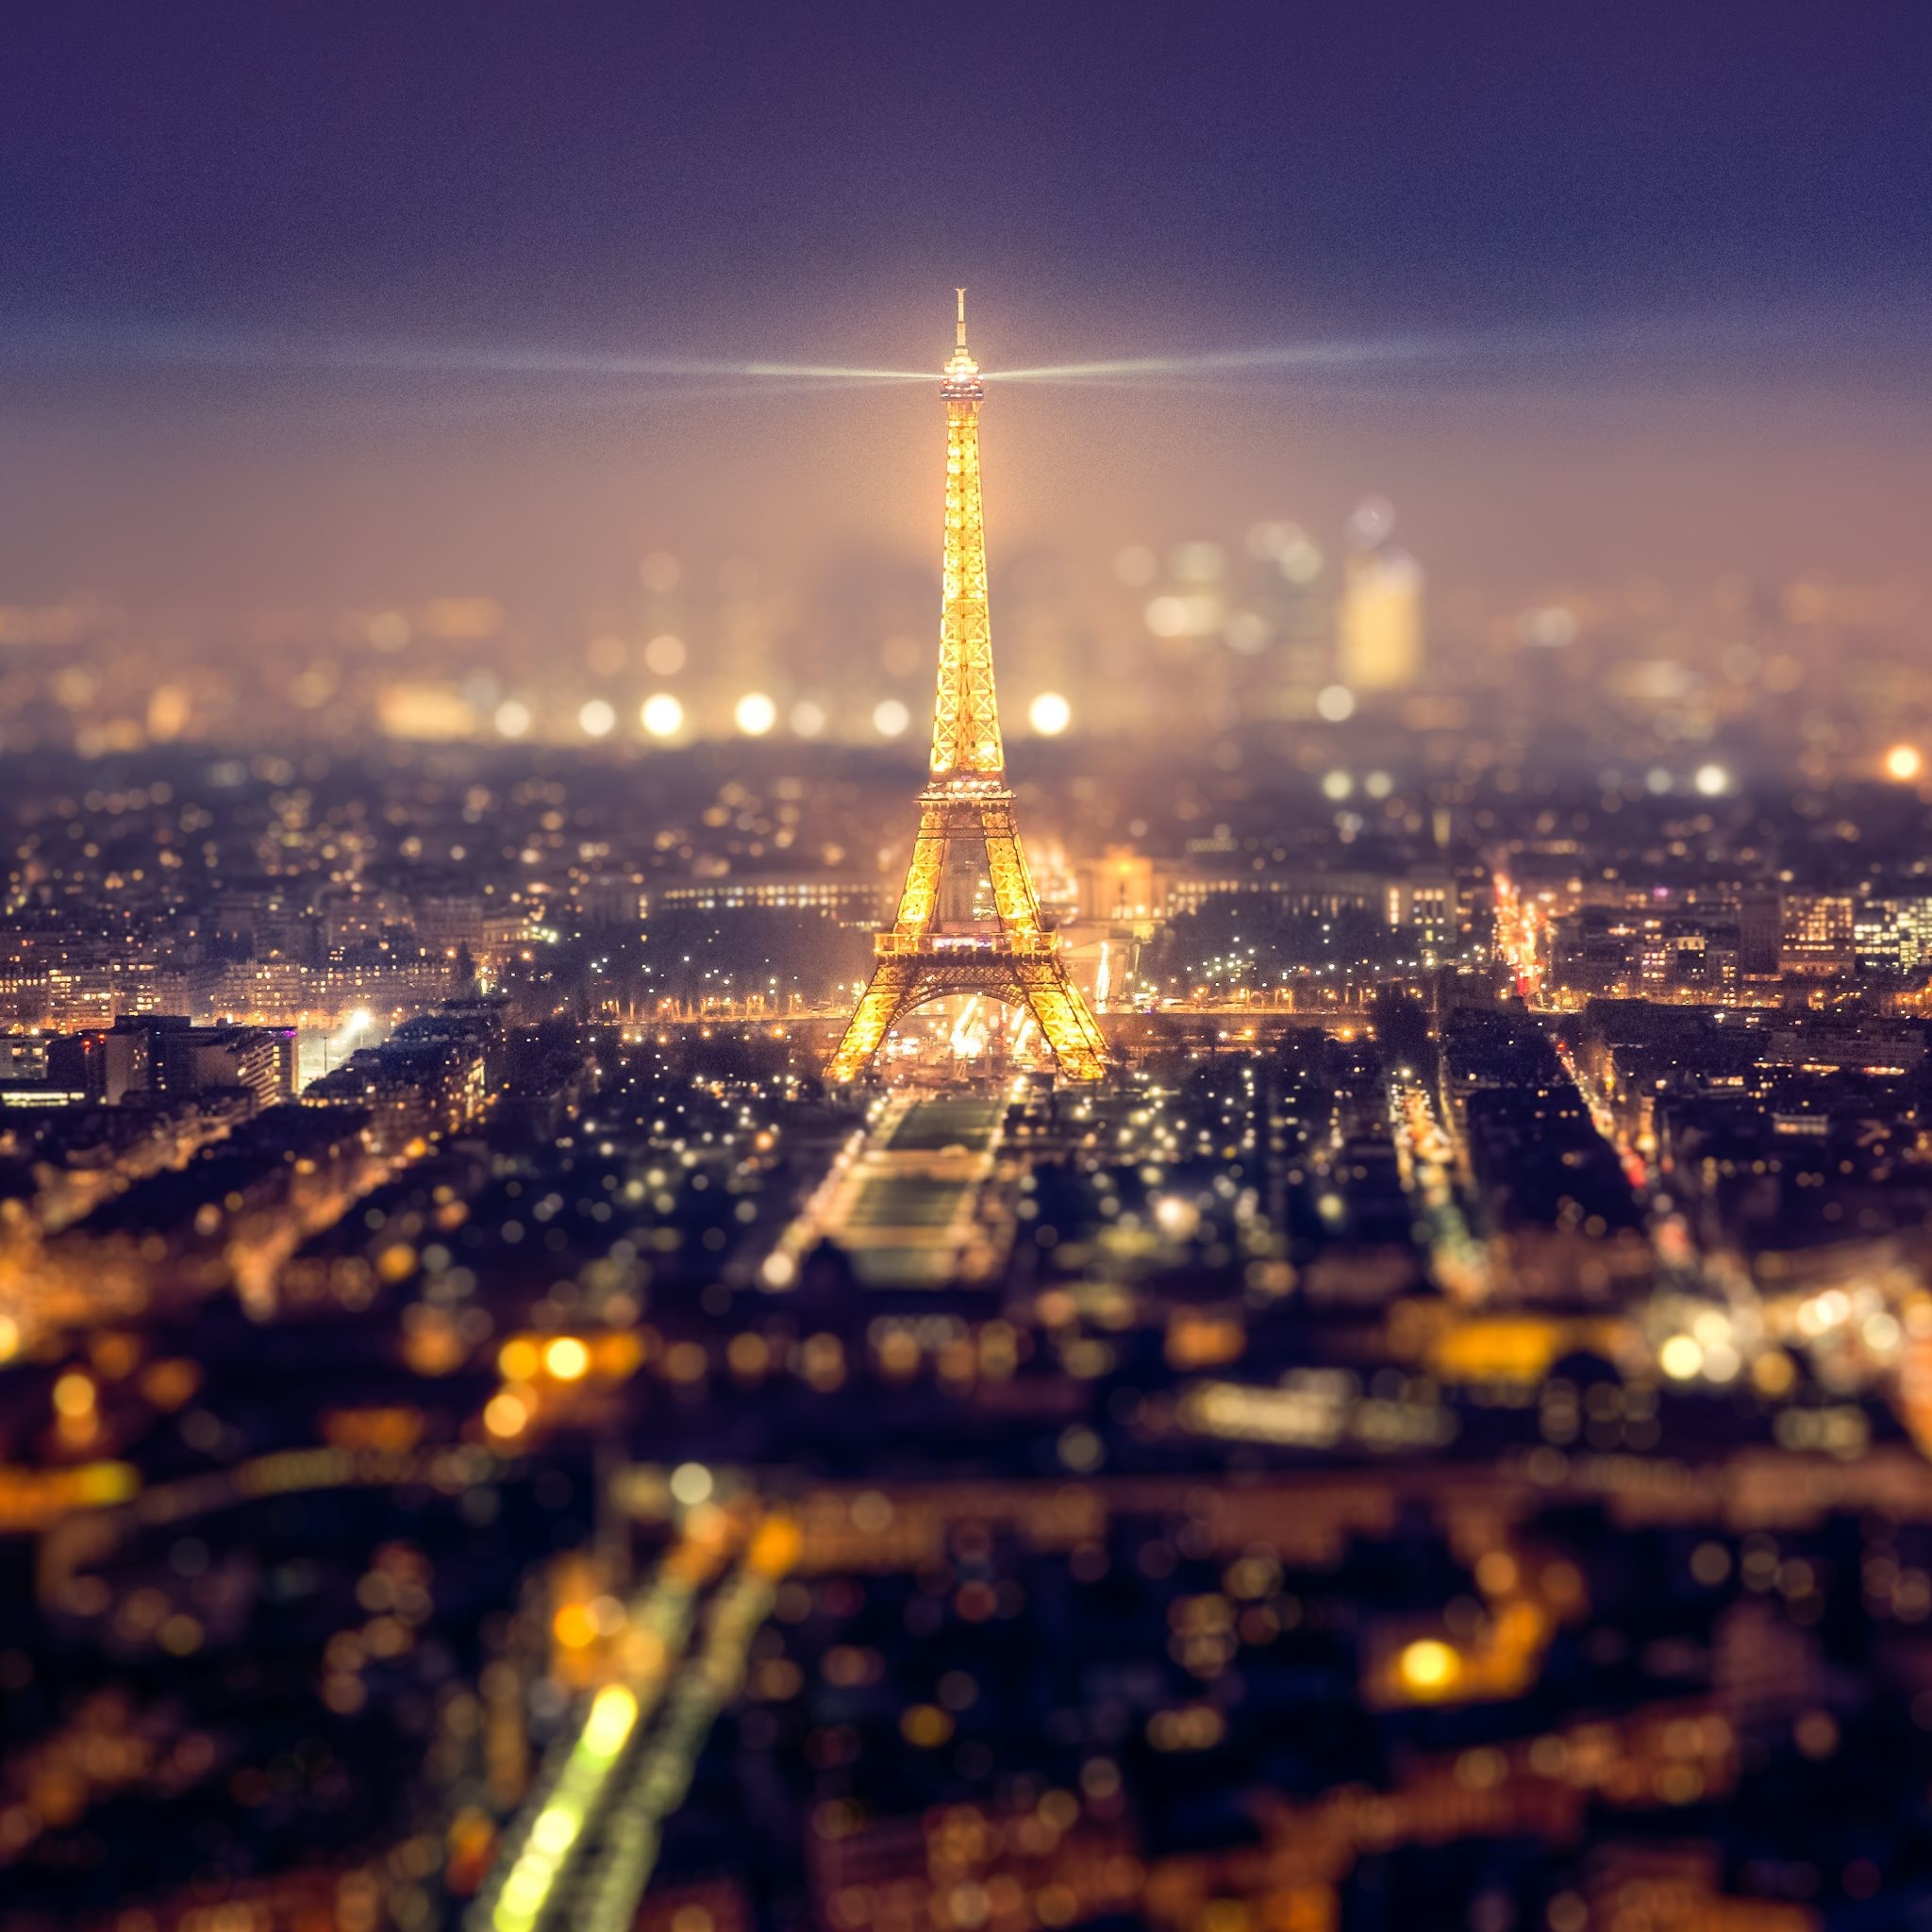 Eiffel Tower At Night Wallpaper (62+ Images